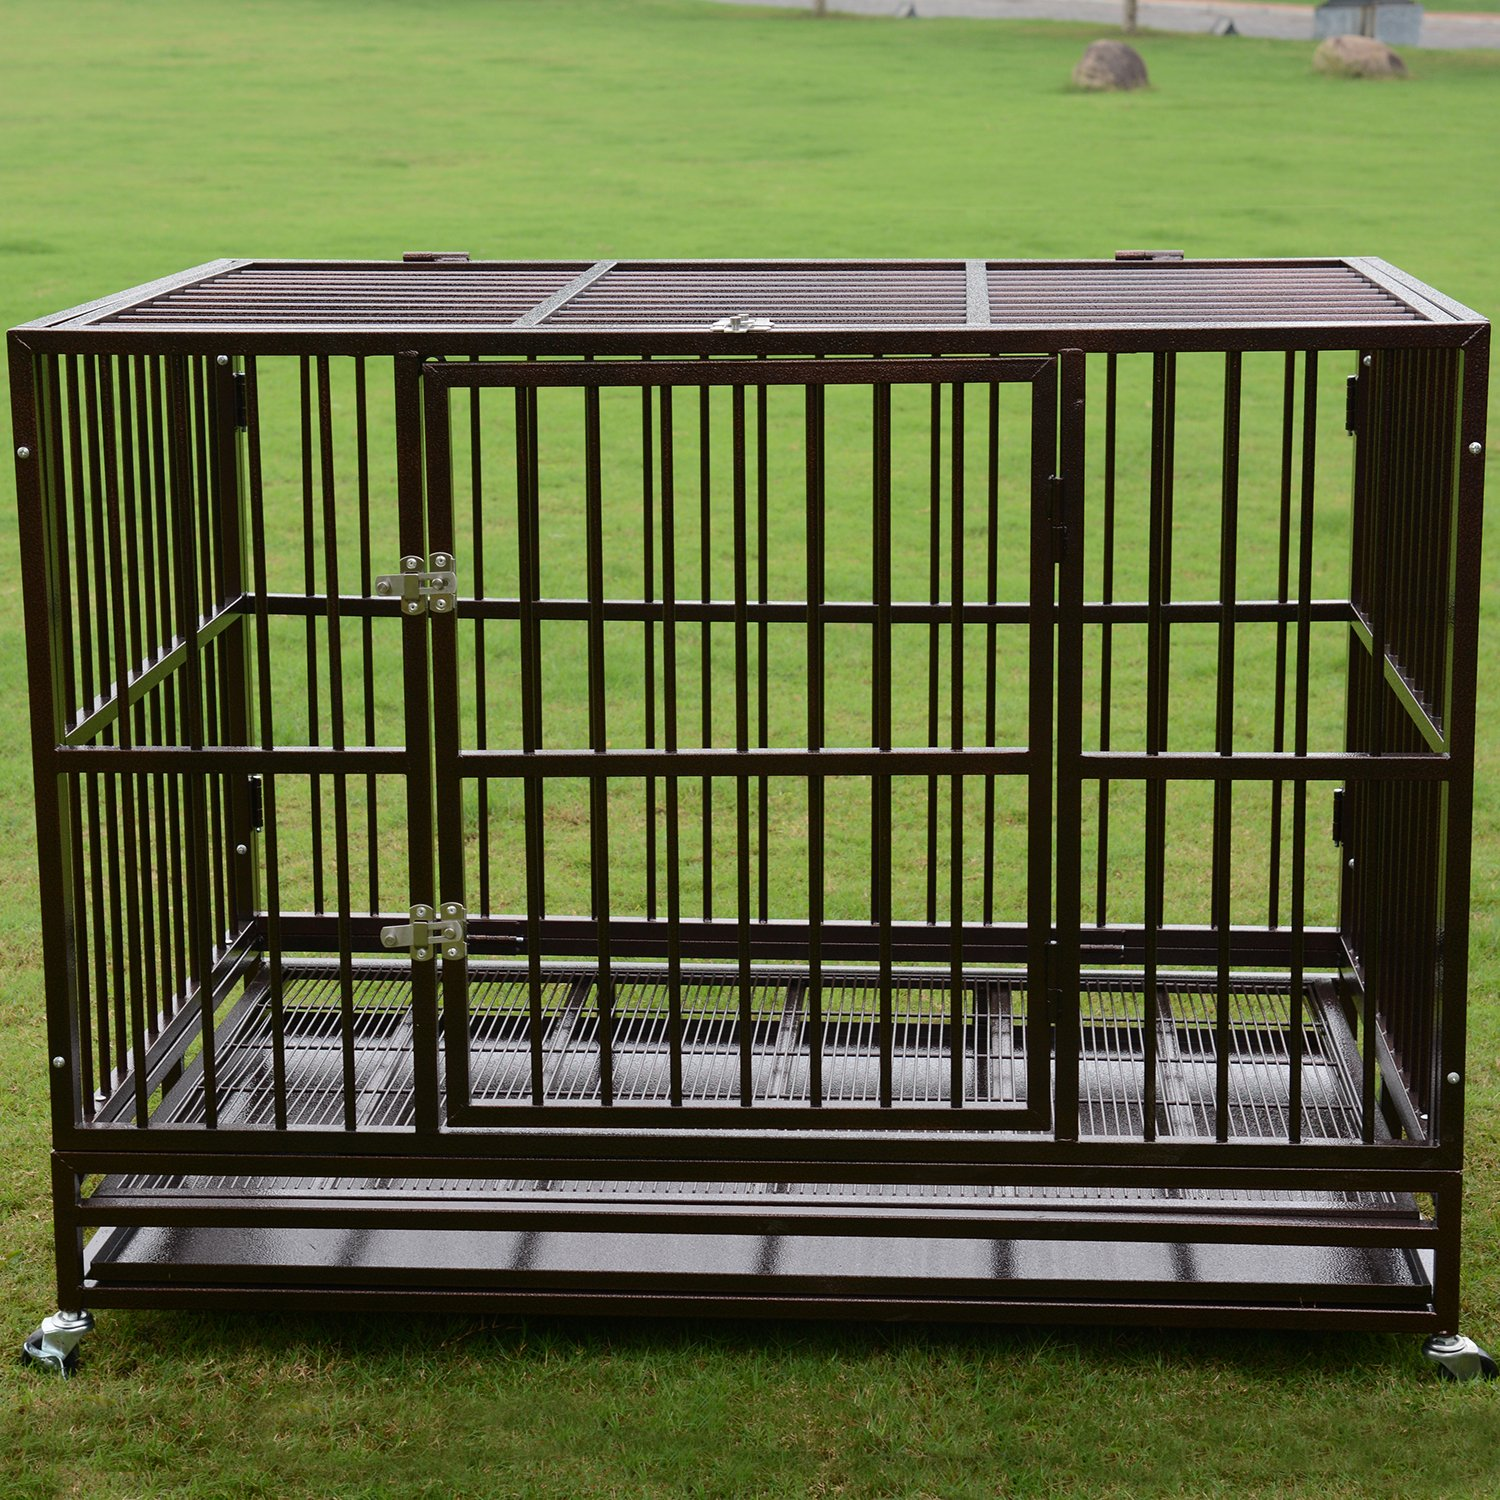 PANEY 48'' Large Dog Crate Kennel Folding Heavy Duty Dog Cage with Metal Tray Wheels Pet Playpen by PANEY